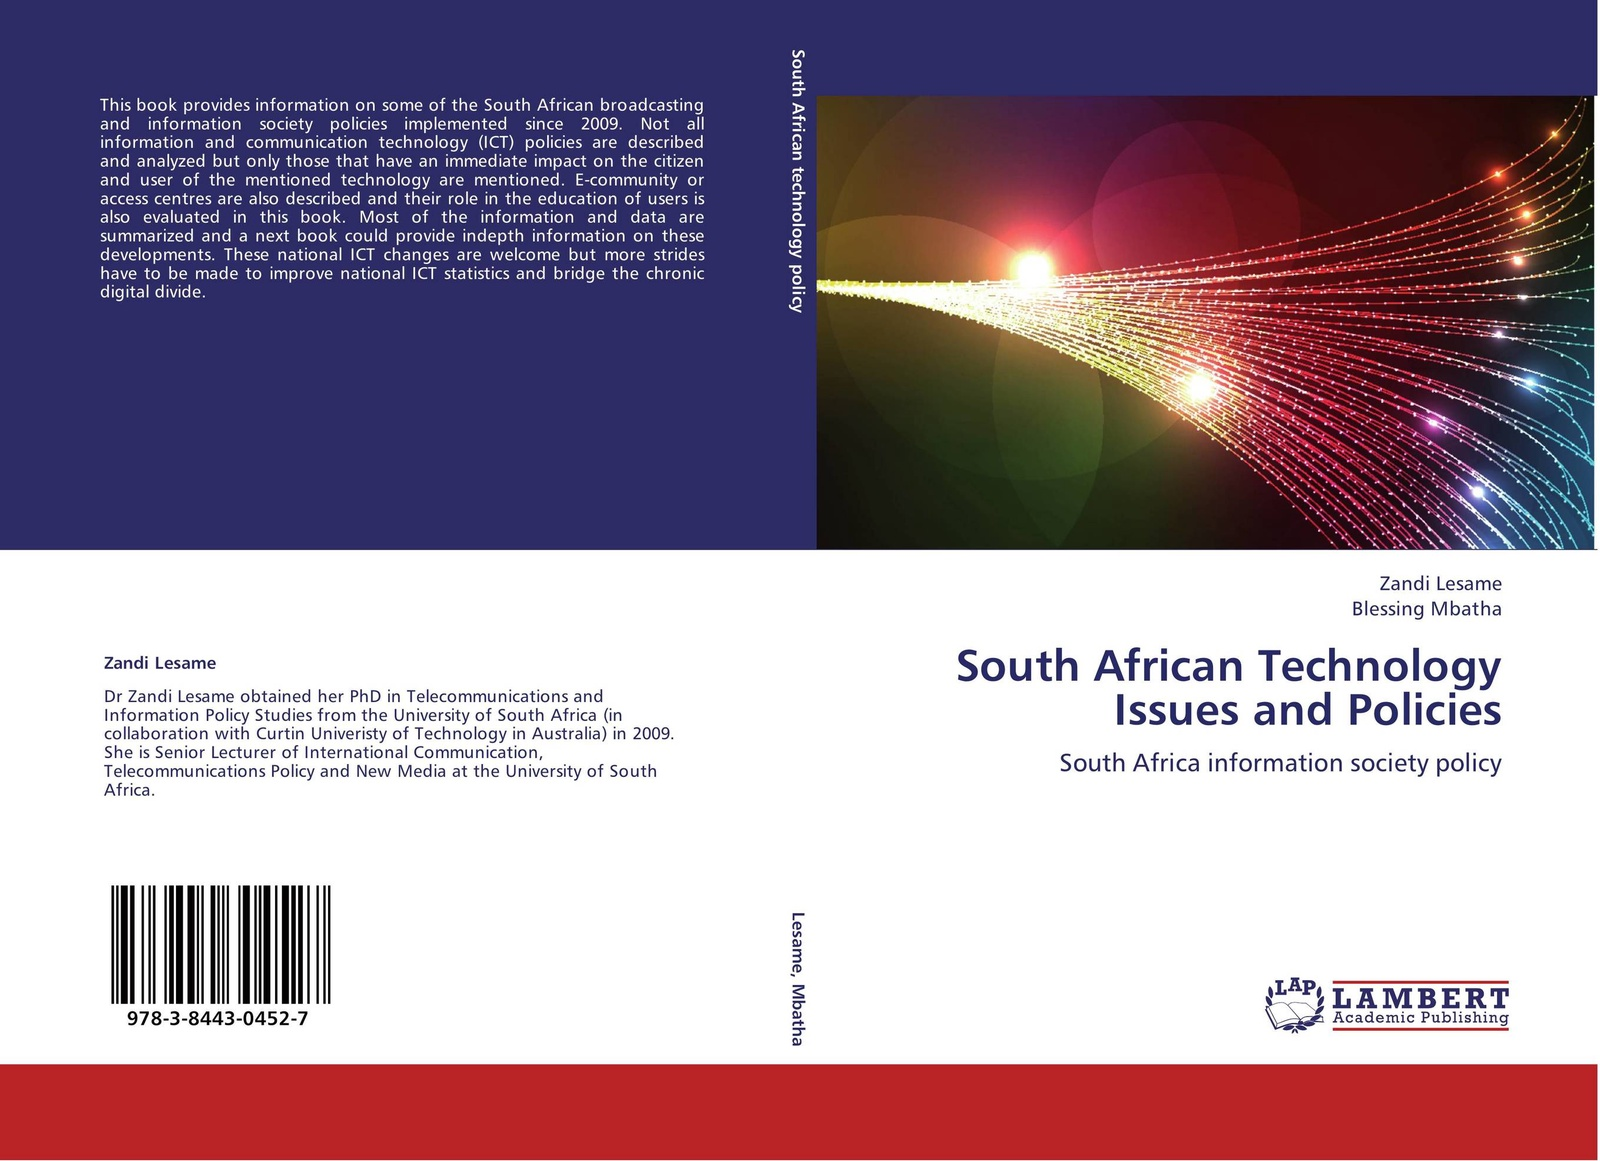 Zandi Lesame and Blessing Mbatha South African Technology Issues and Policies cross national information and communication technology policies and practices in education revised second edition pb